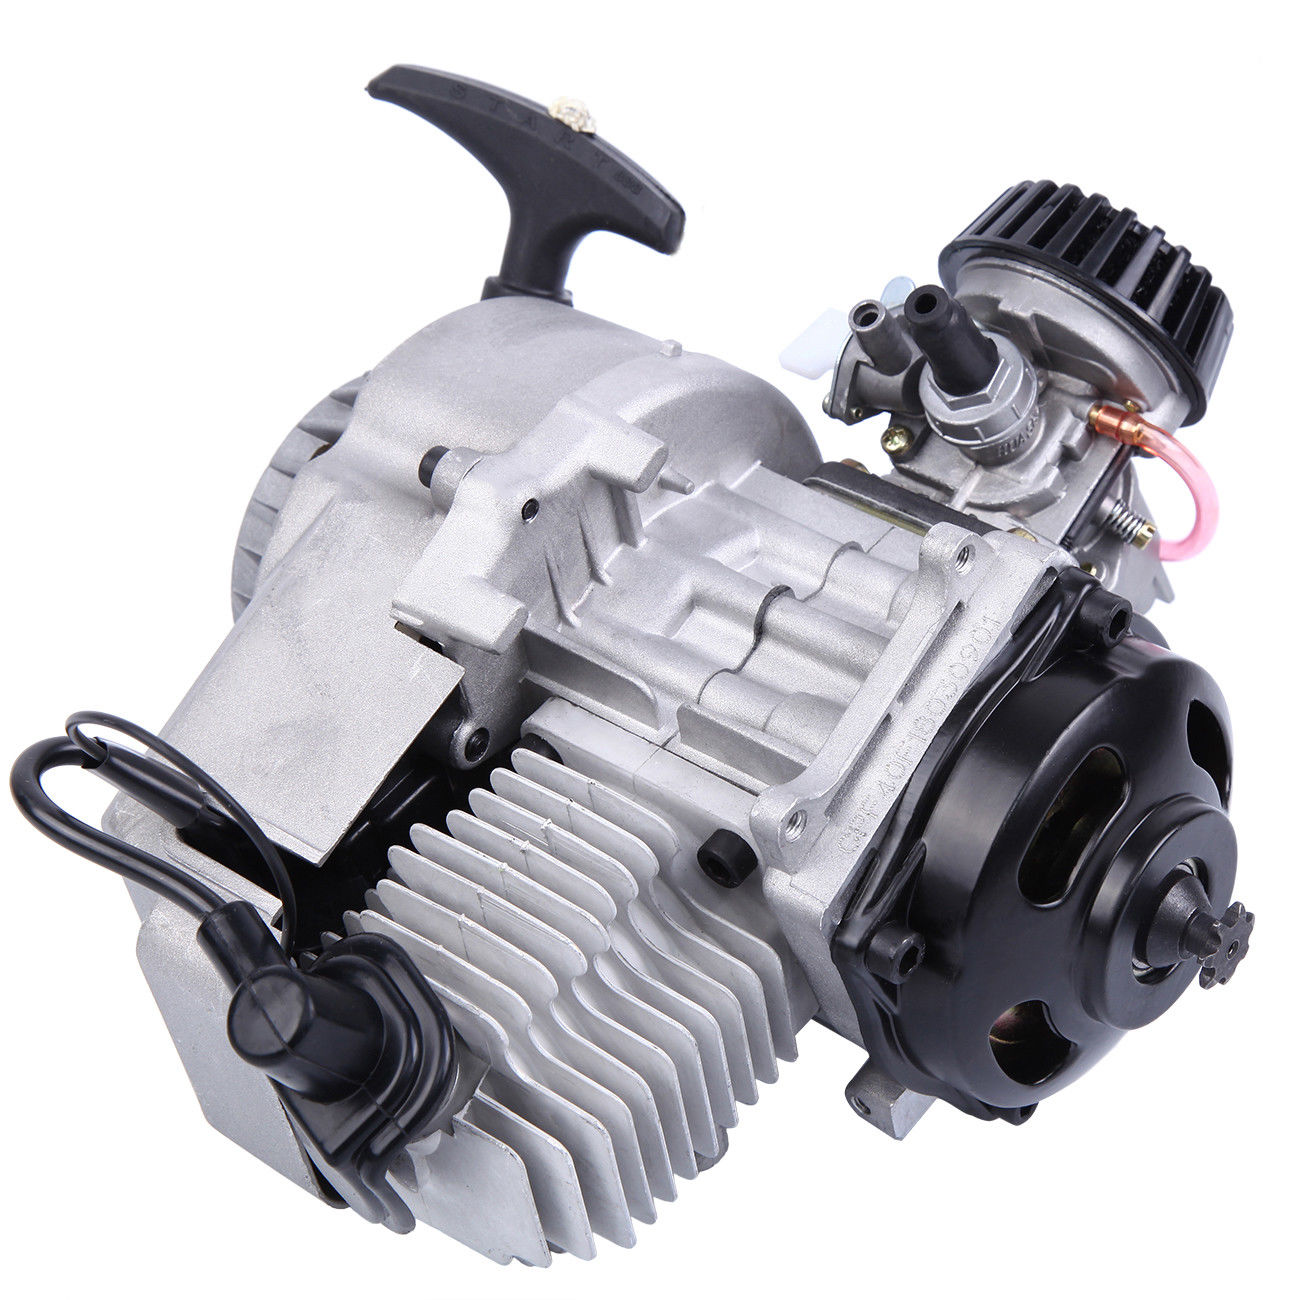 Samger 49CC Motor 2 Hub Mini Motor Start Motor Für Motorrad Dirt <font><b>Bike</b></font> <font><b>Pocket</b></font> <font><b>Bike</b></font> ATV image